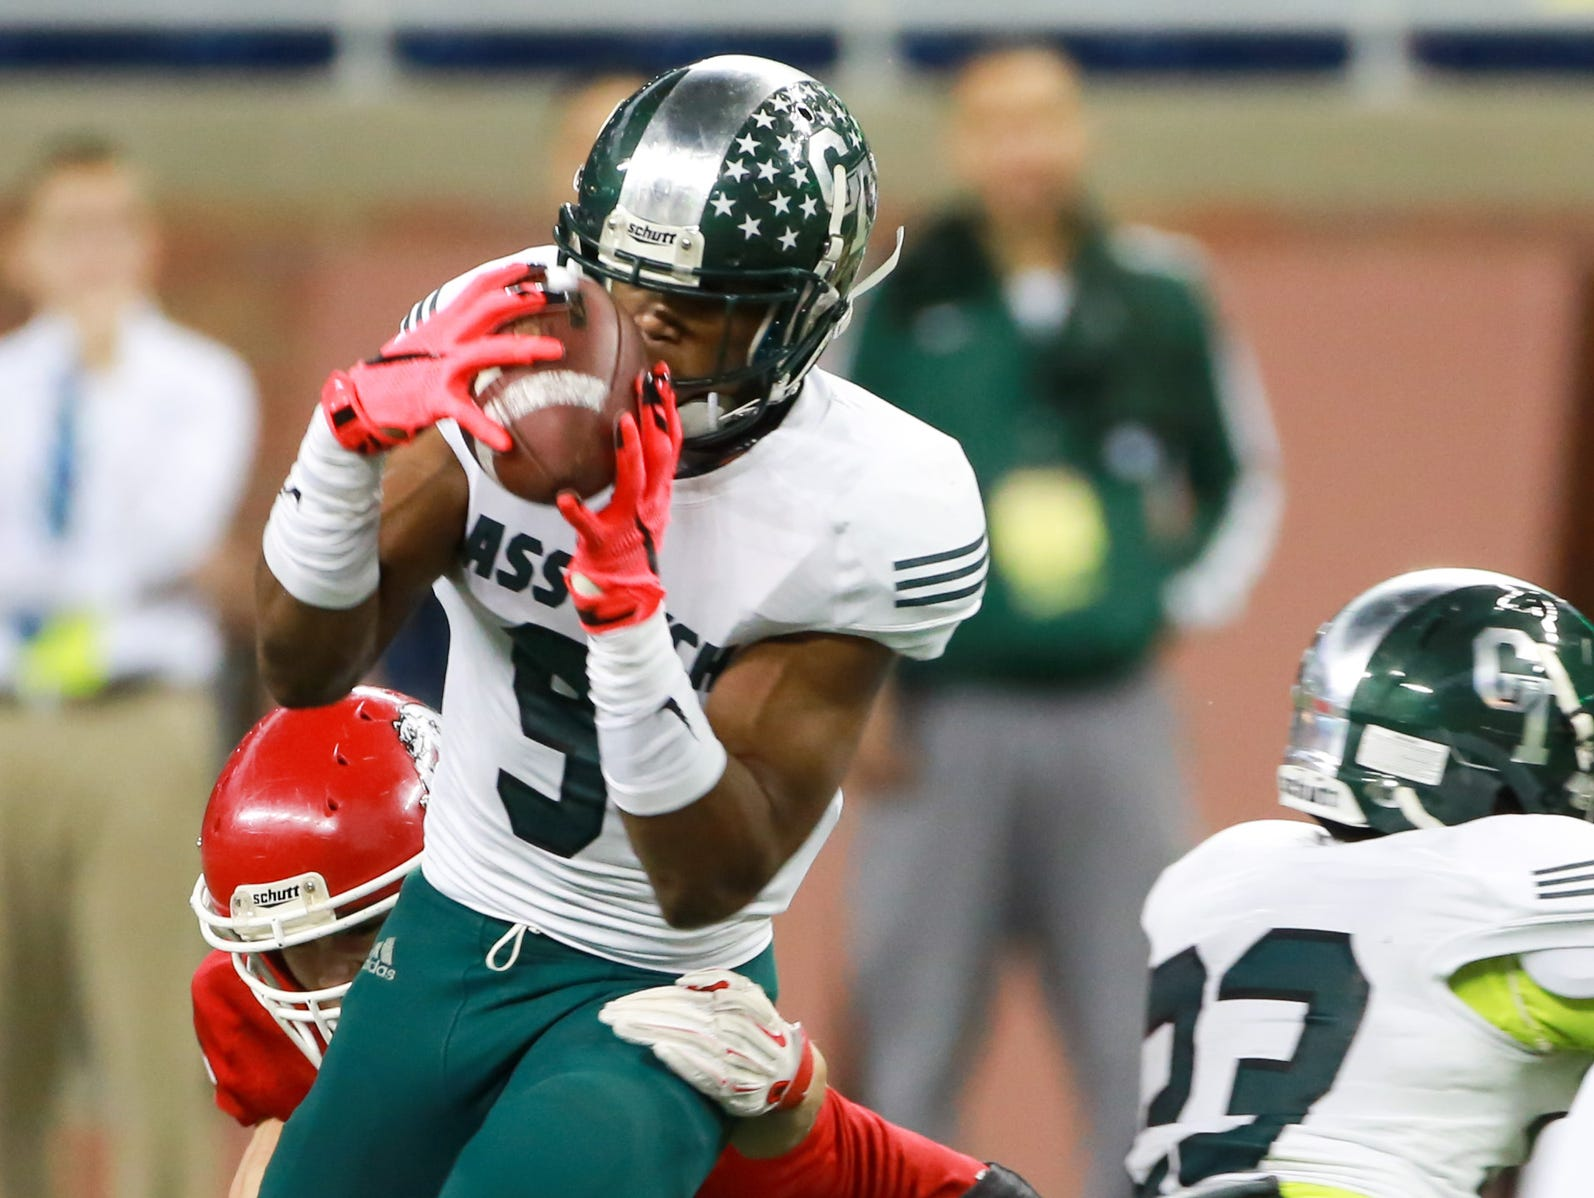 Detroit Cass Tech Donovan People-Jones catches a pass, during the first half of the Michigan High School Athletic Association football Division 1 finals at Ford Field in Detroit on Saturday, Nov. 28, 2015.